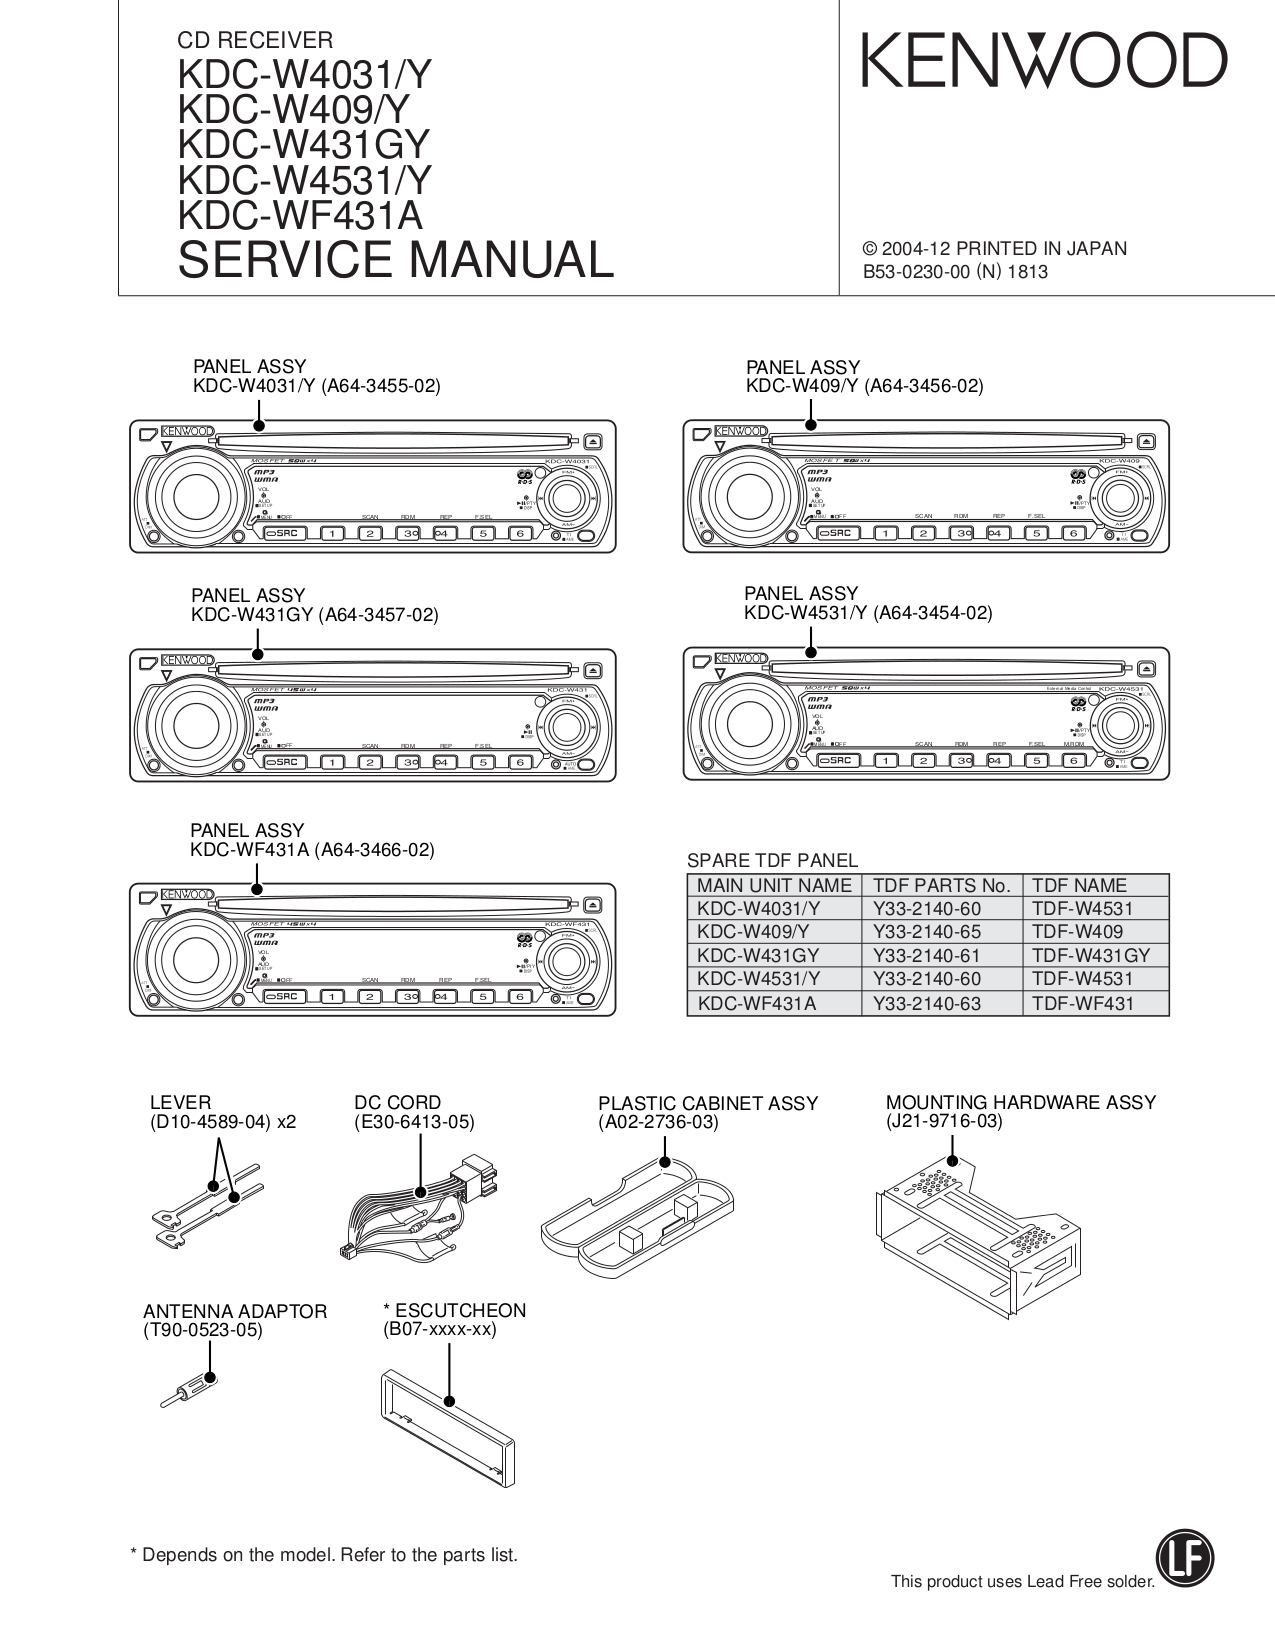 Kenwood Kdc 122 Wiring Diagram Colors Library W4031 W409 W431gy W4531 Wf431apdf 0 Download Free Pdf For 519 Car